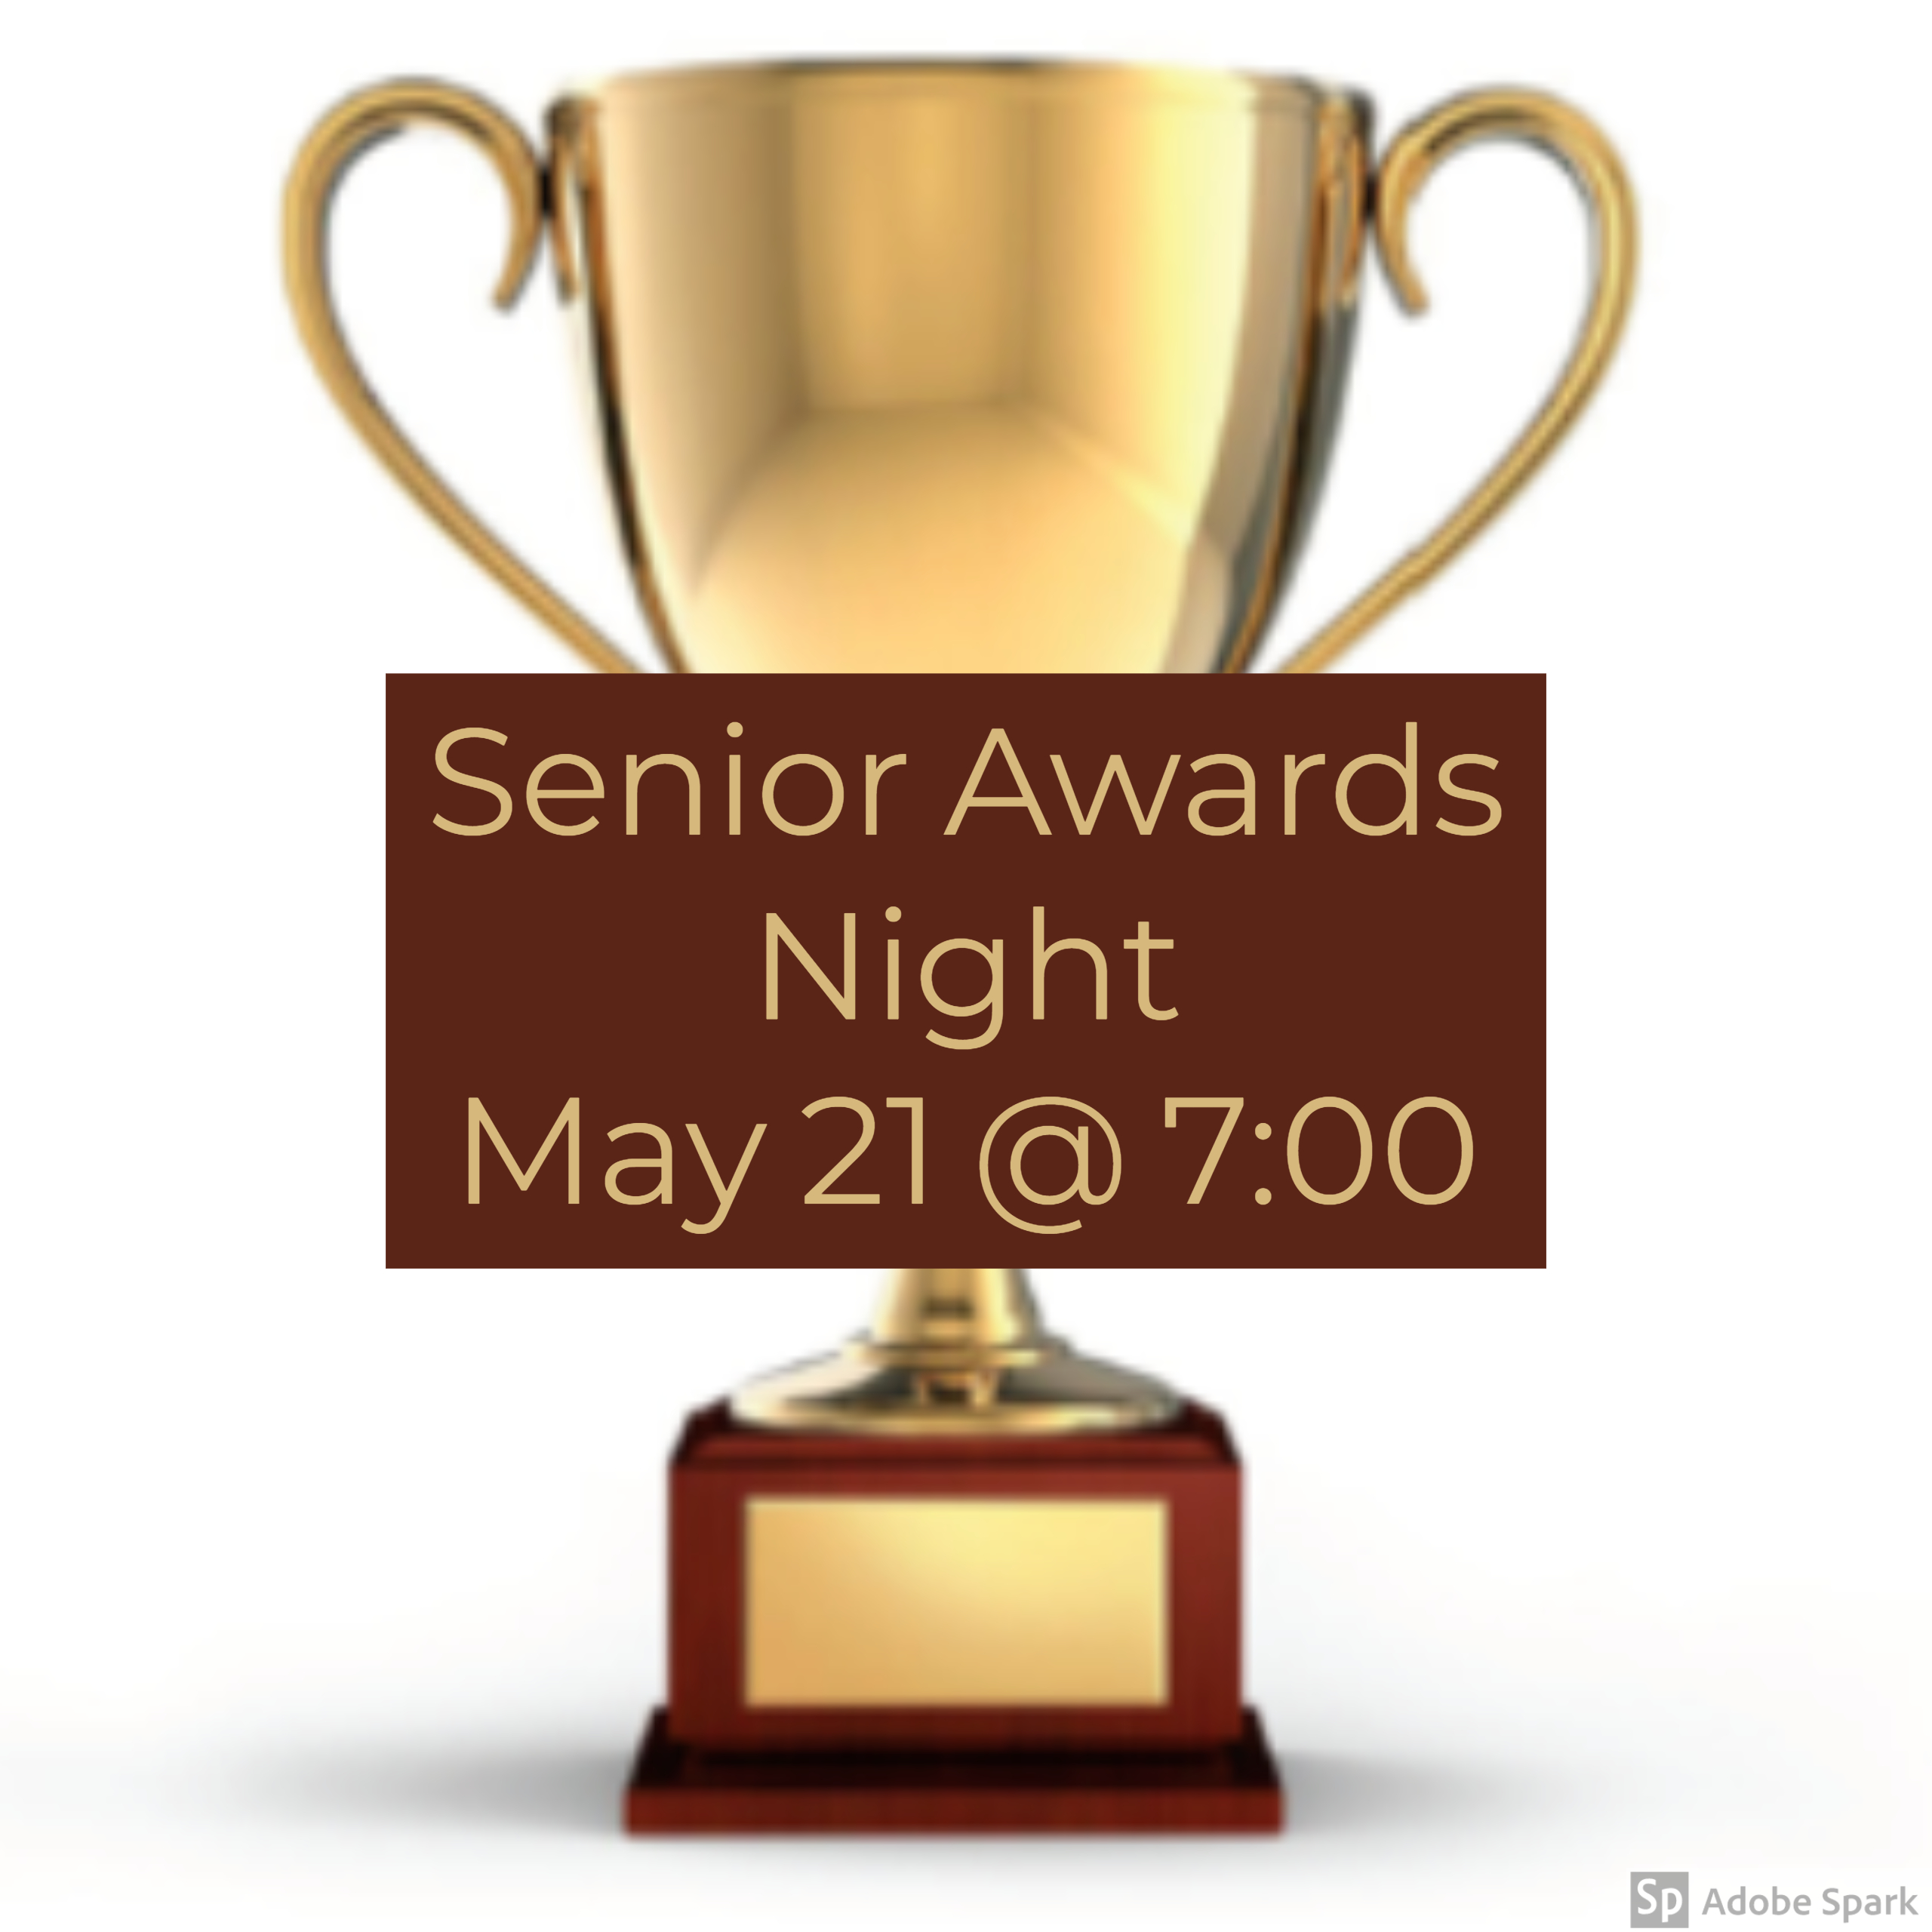 Senior Award Night